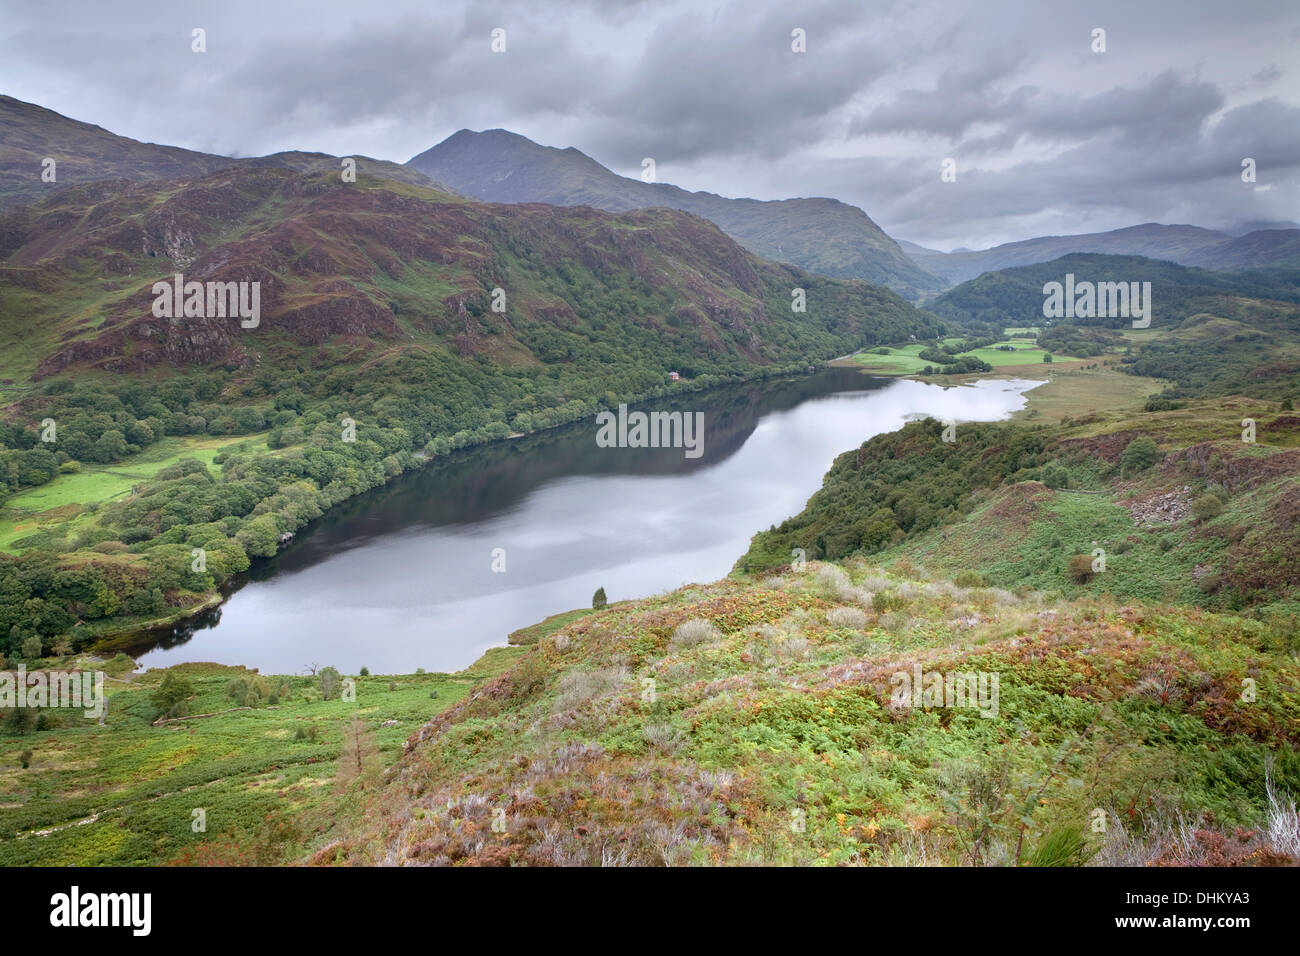 Llyn Dinas from above on an over cast day. Snowdon can be seen in the distance. Stock Photo